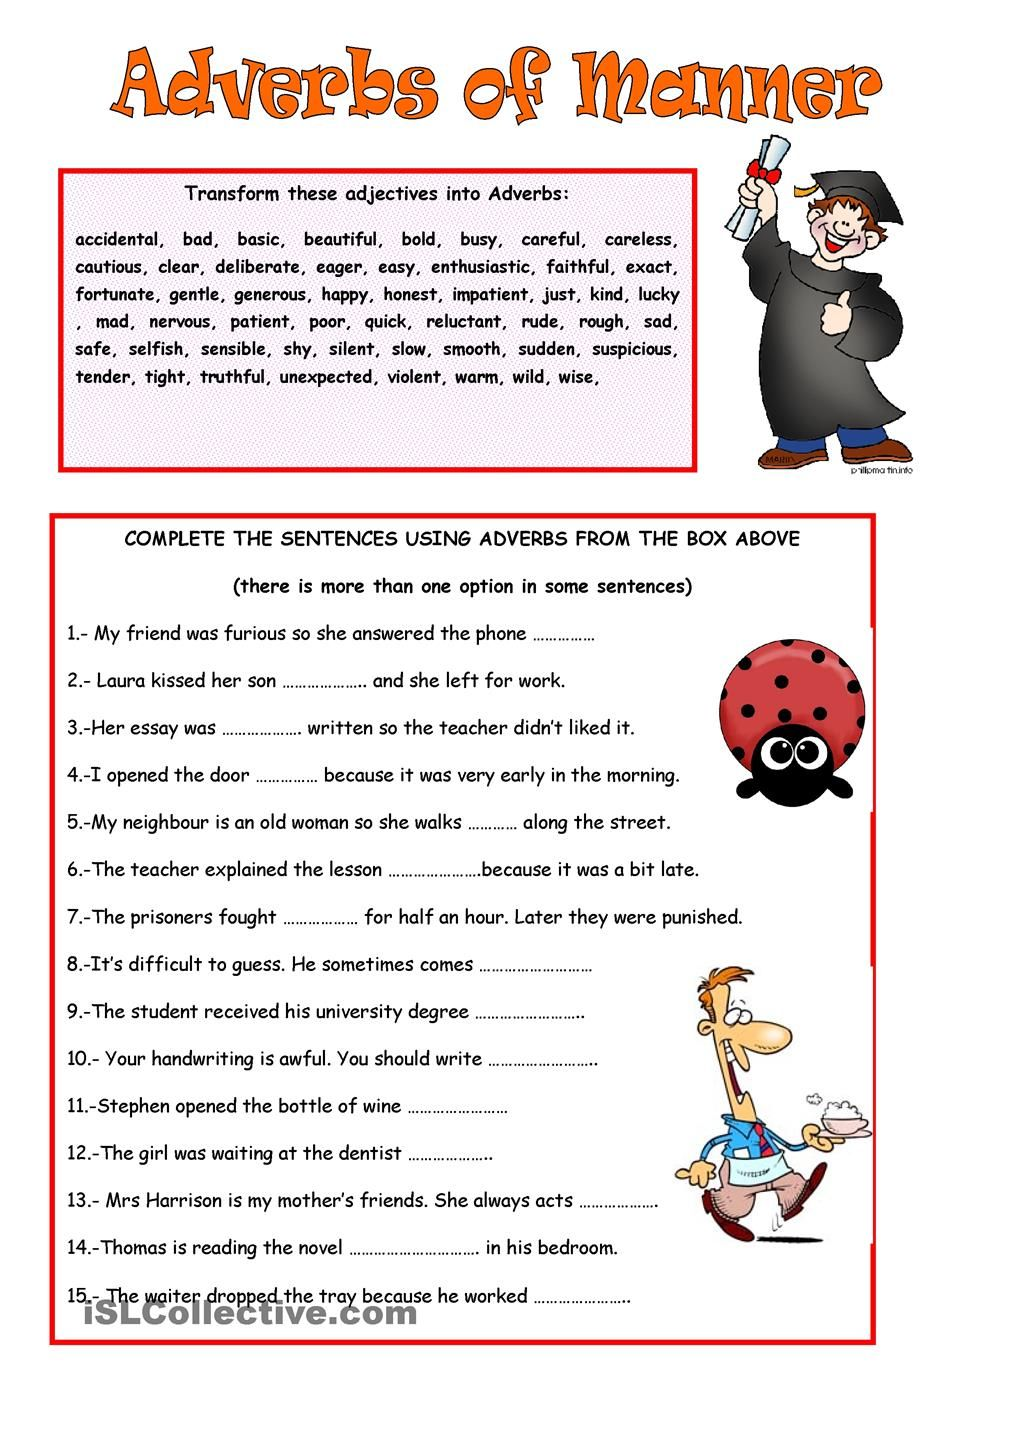 Workbooks worksheets on kinds of adverbs : ADVERBS OF MANNER | ESL 2 | Pinterest | Adverbs, Manners and ...